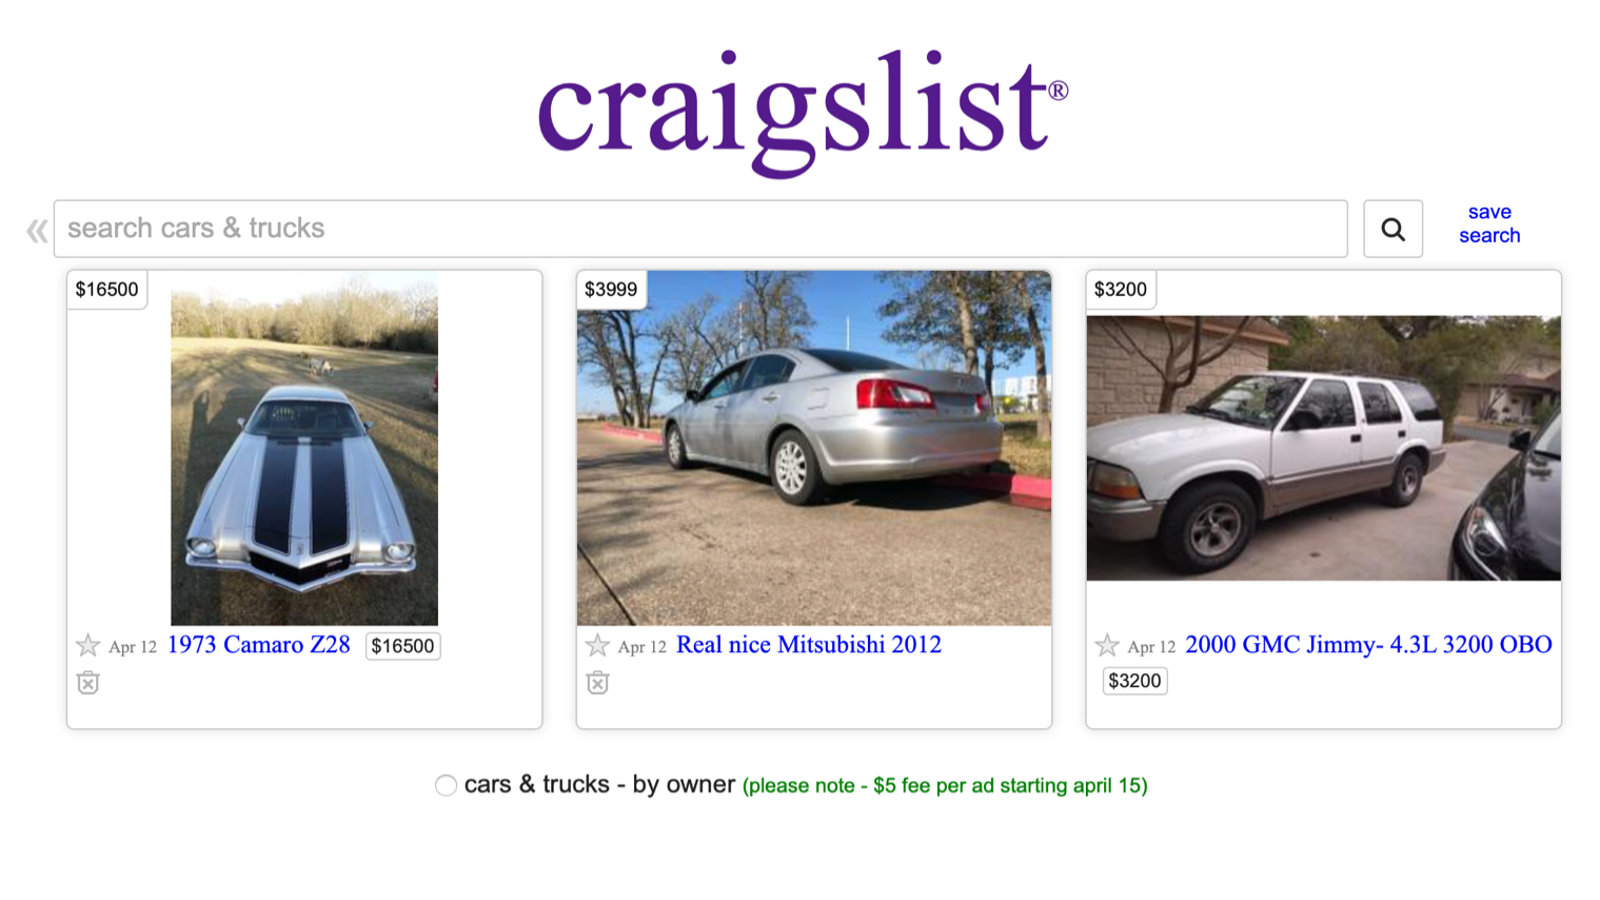 Craigslist Will Soon Start Charging $5 To List A Car For Sale